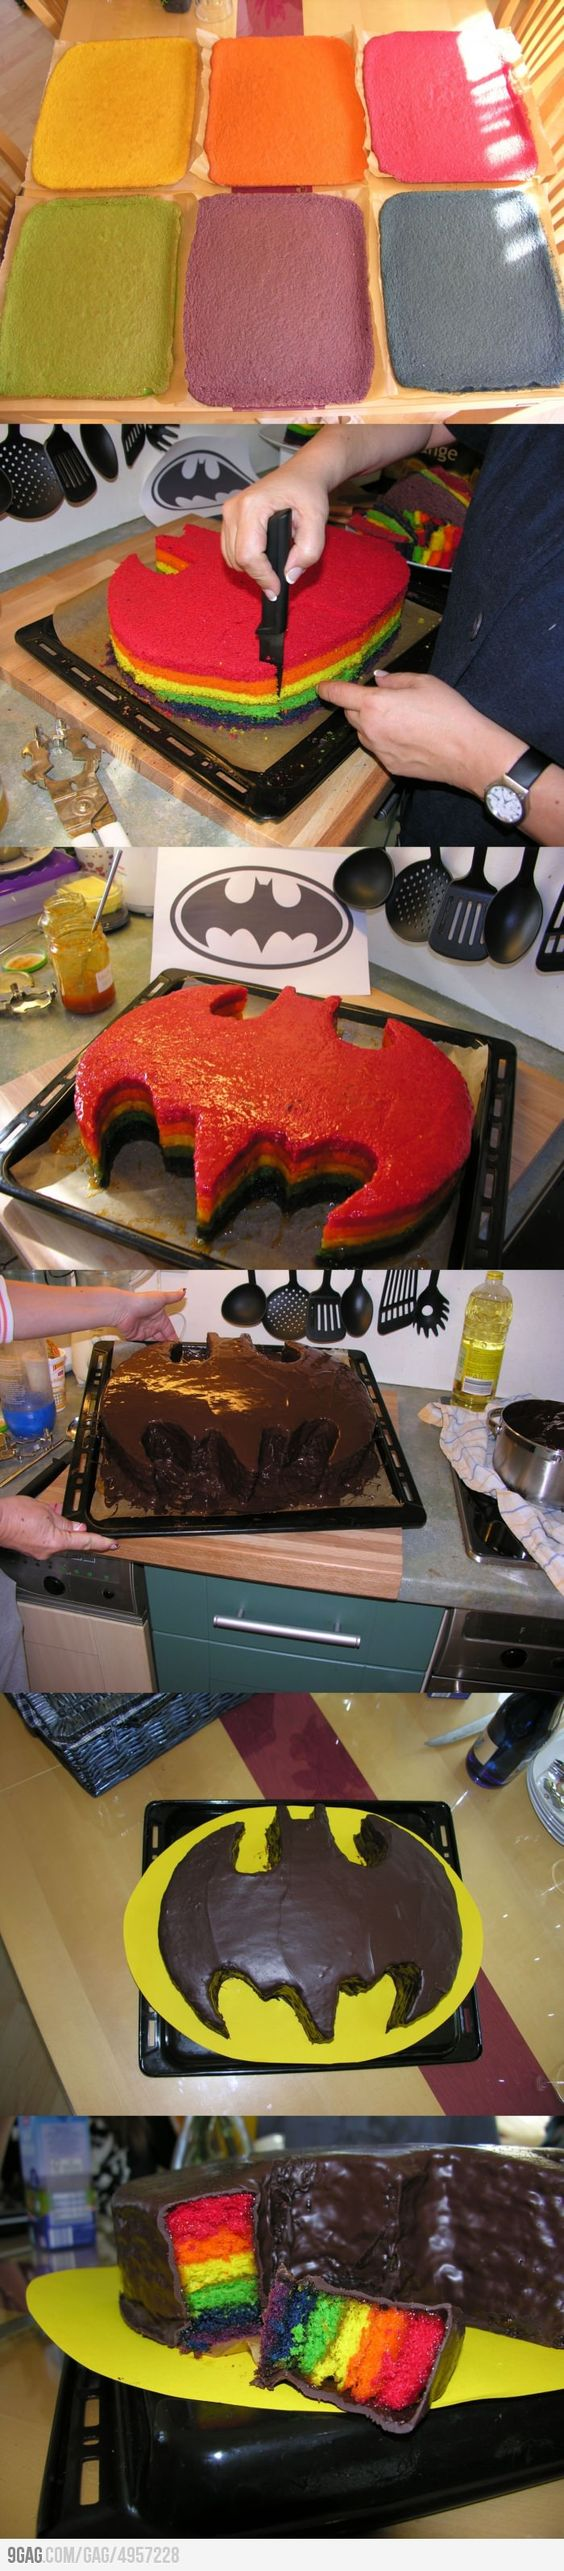 Rainbow batman cake...Joey your birthday needs to come faster